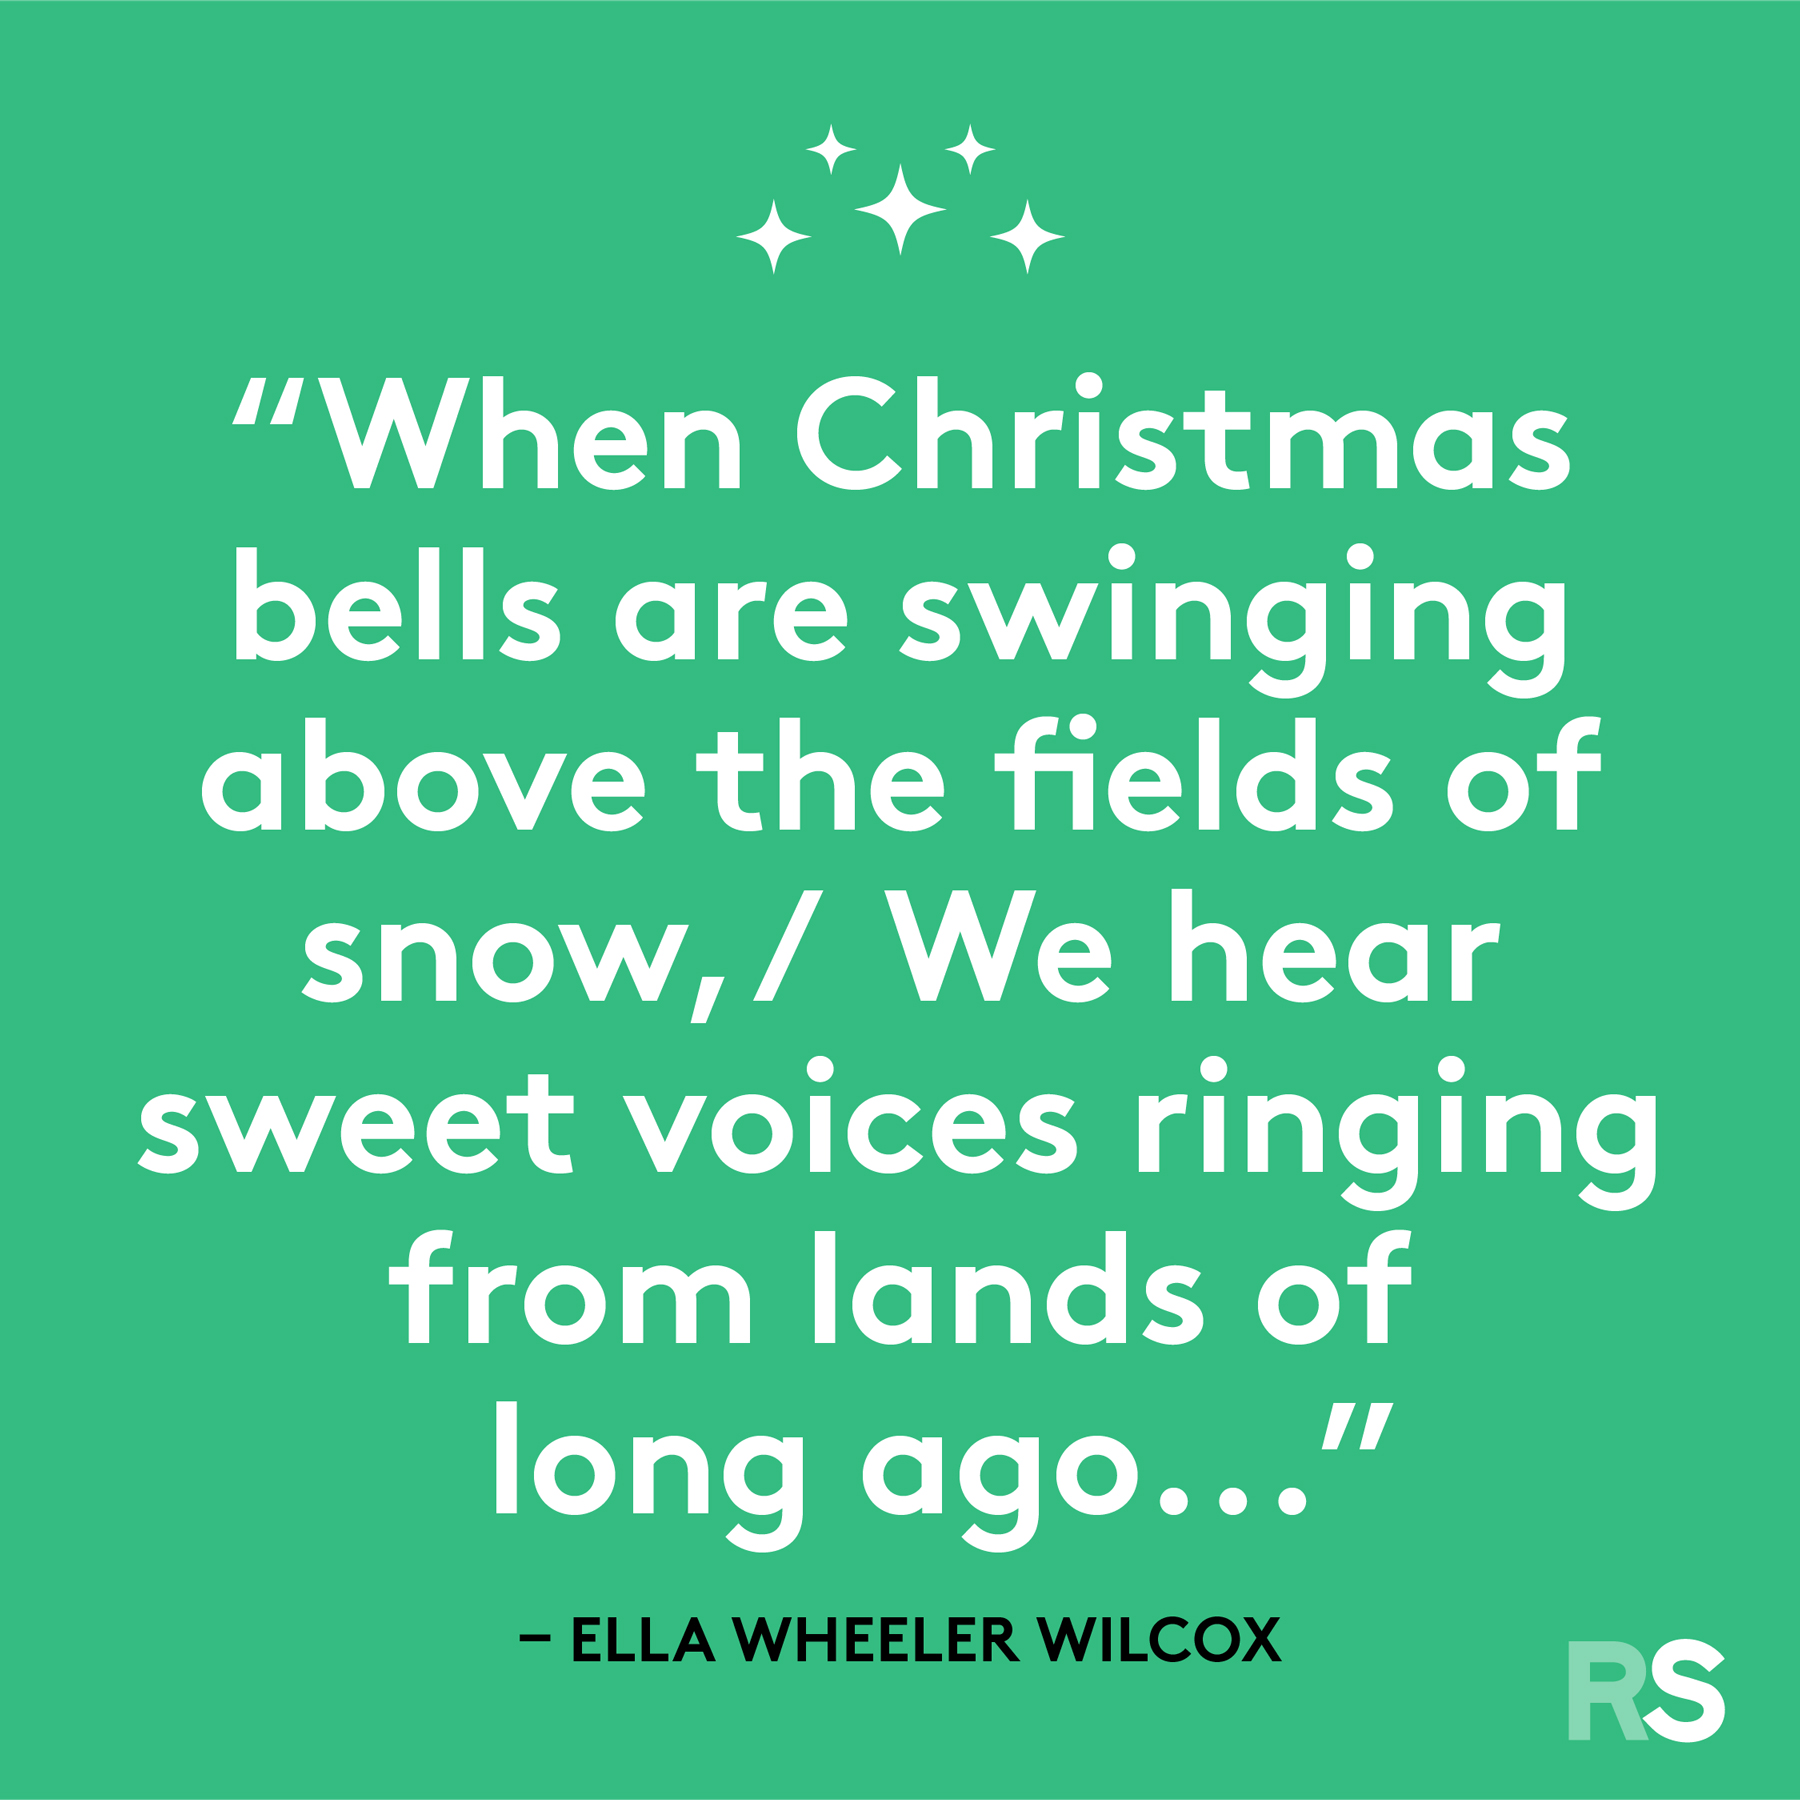 Best Christmas quotes - Ella Wheeler Wilcox